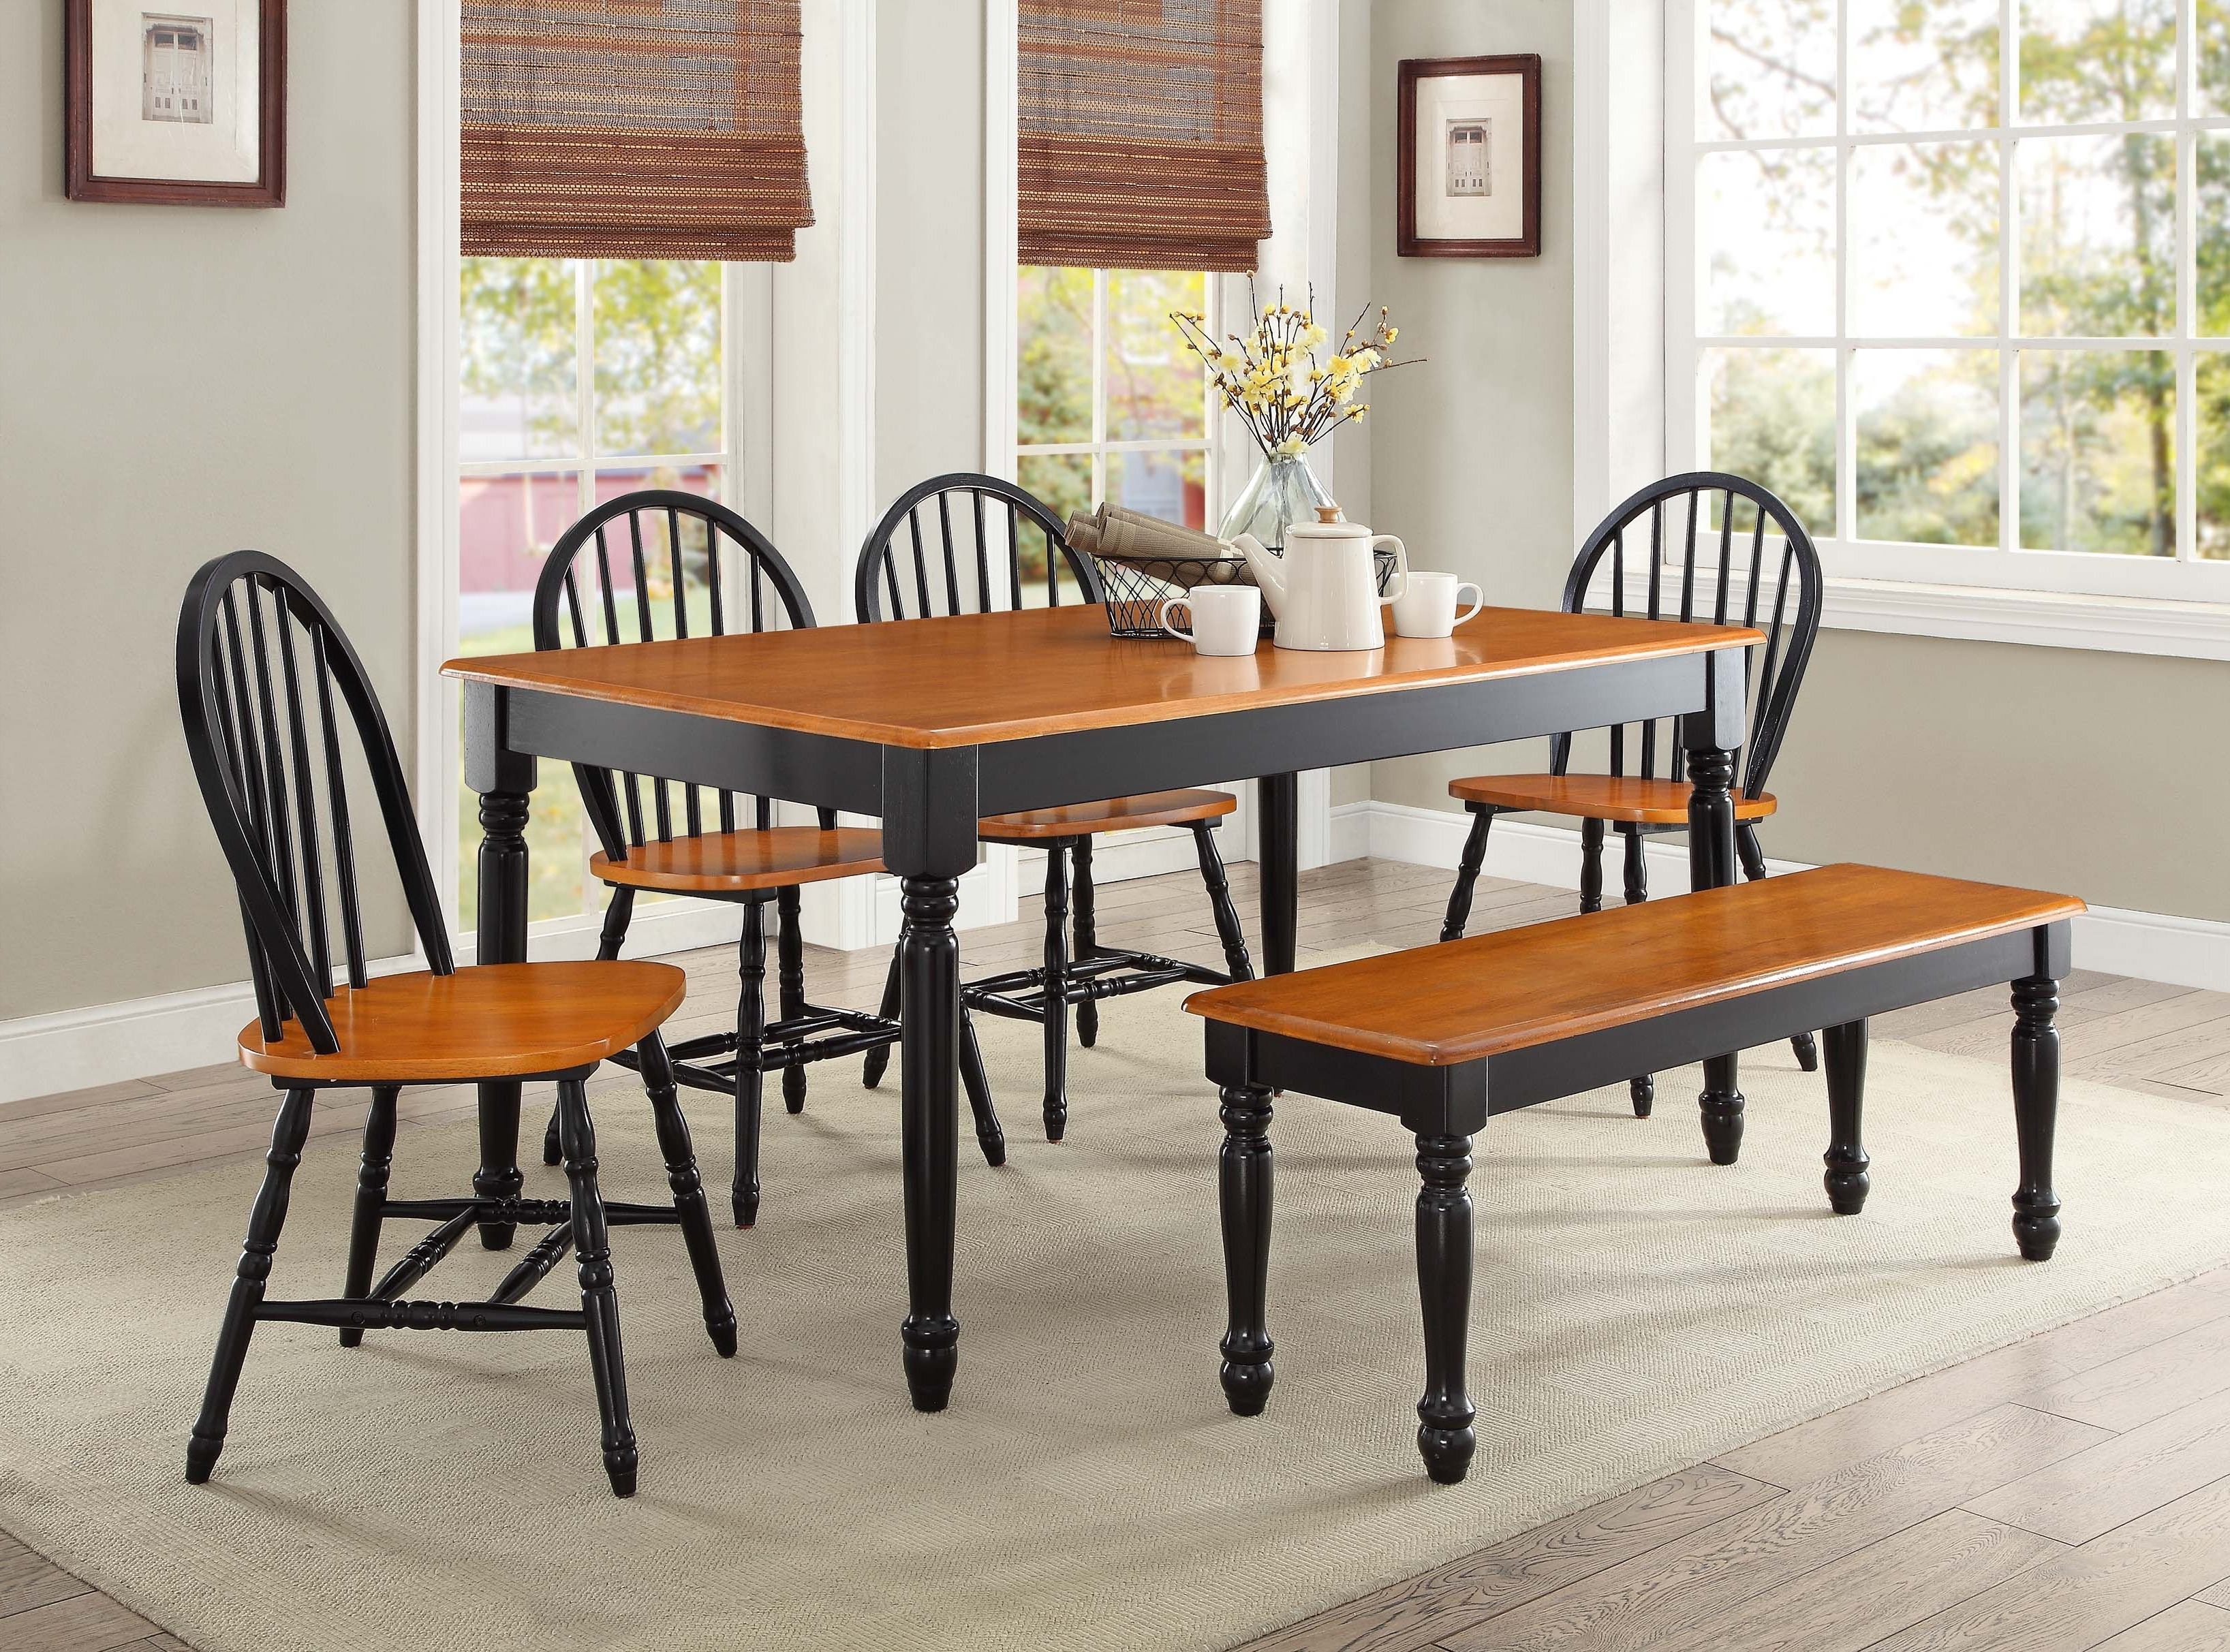 Best And Newest Black Wood Dining Tables Sets For Better Homes And Gardens Autumn Lane Farmhouse Dining Table, Black (View 2 of 25)